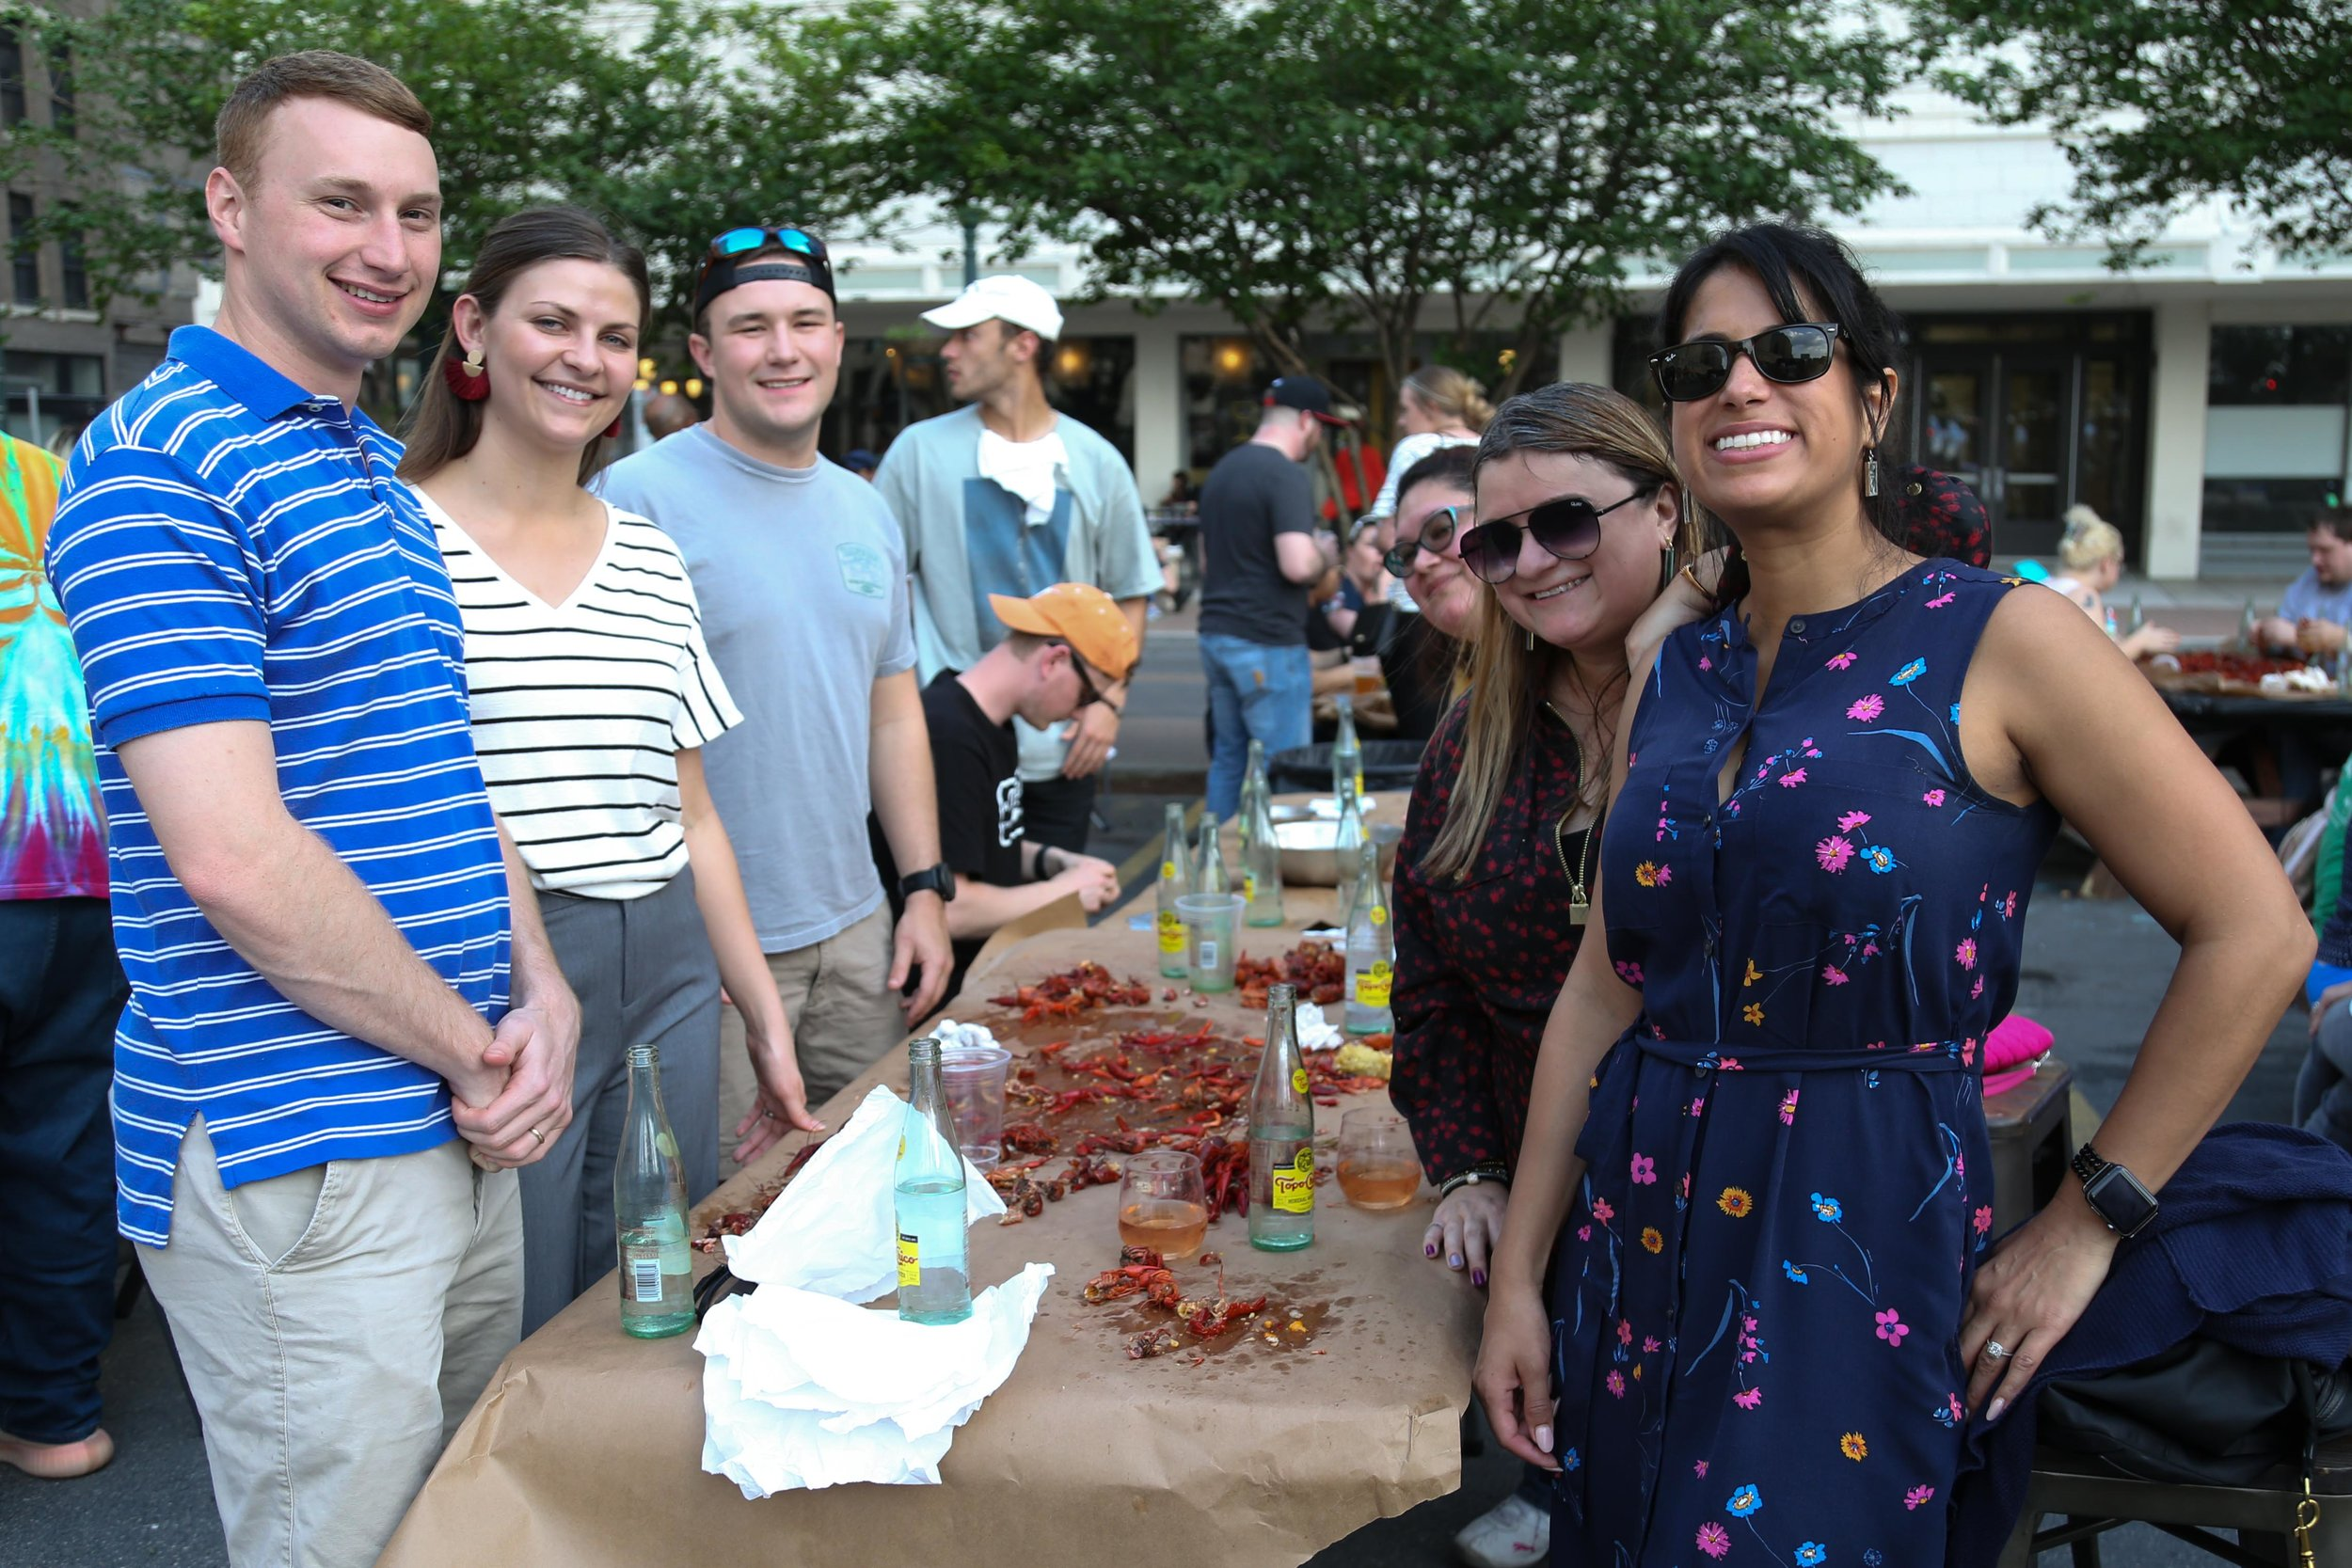 The crawfish boil was a hit among attendees. (Photos by:  GA Media Media Productions .)